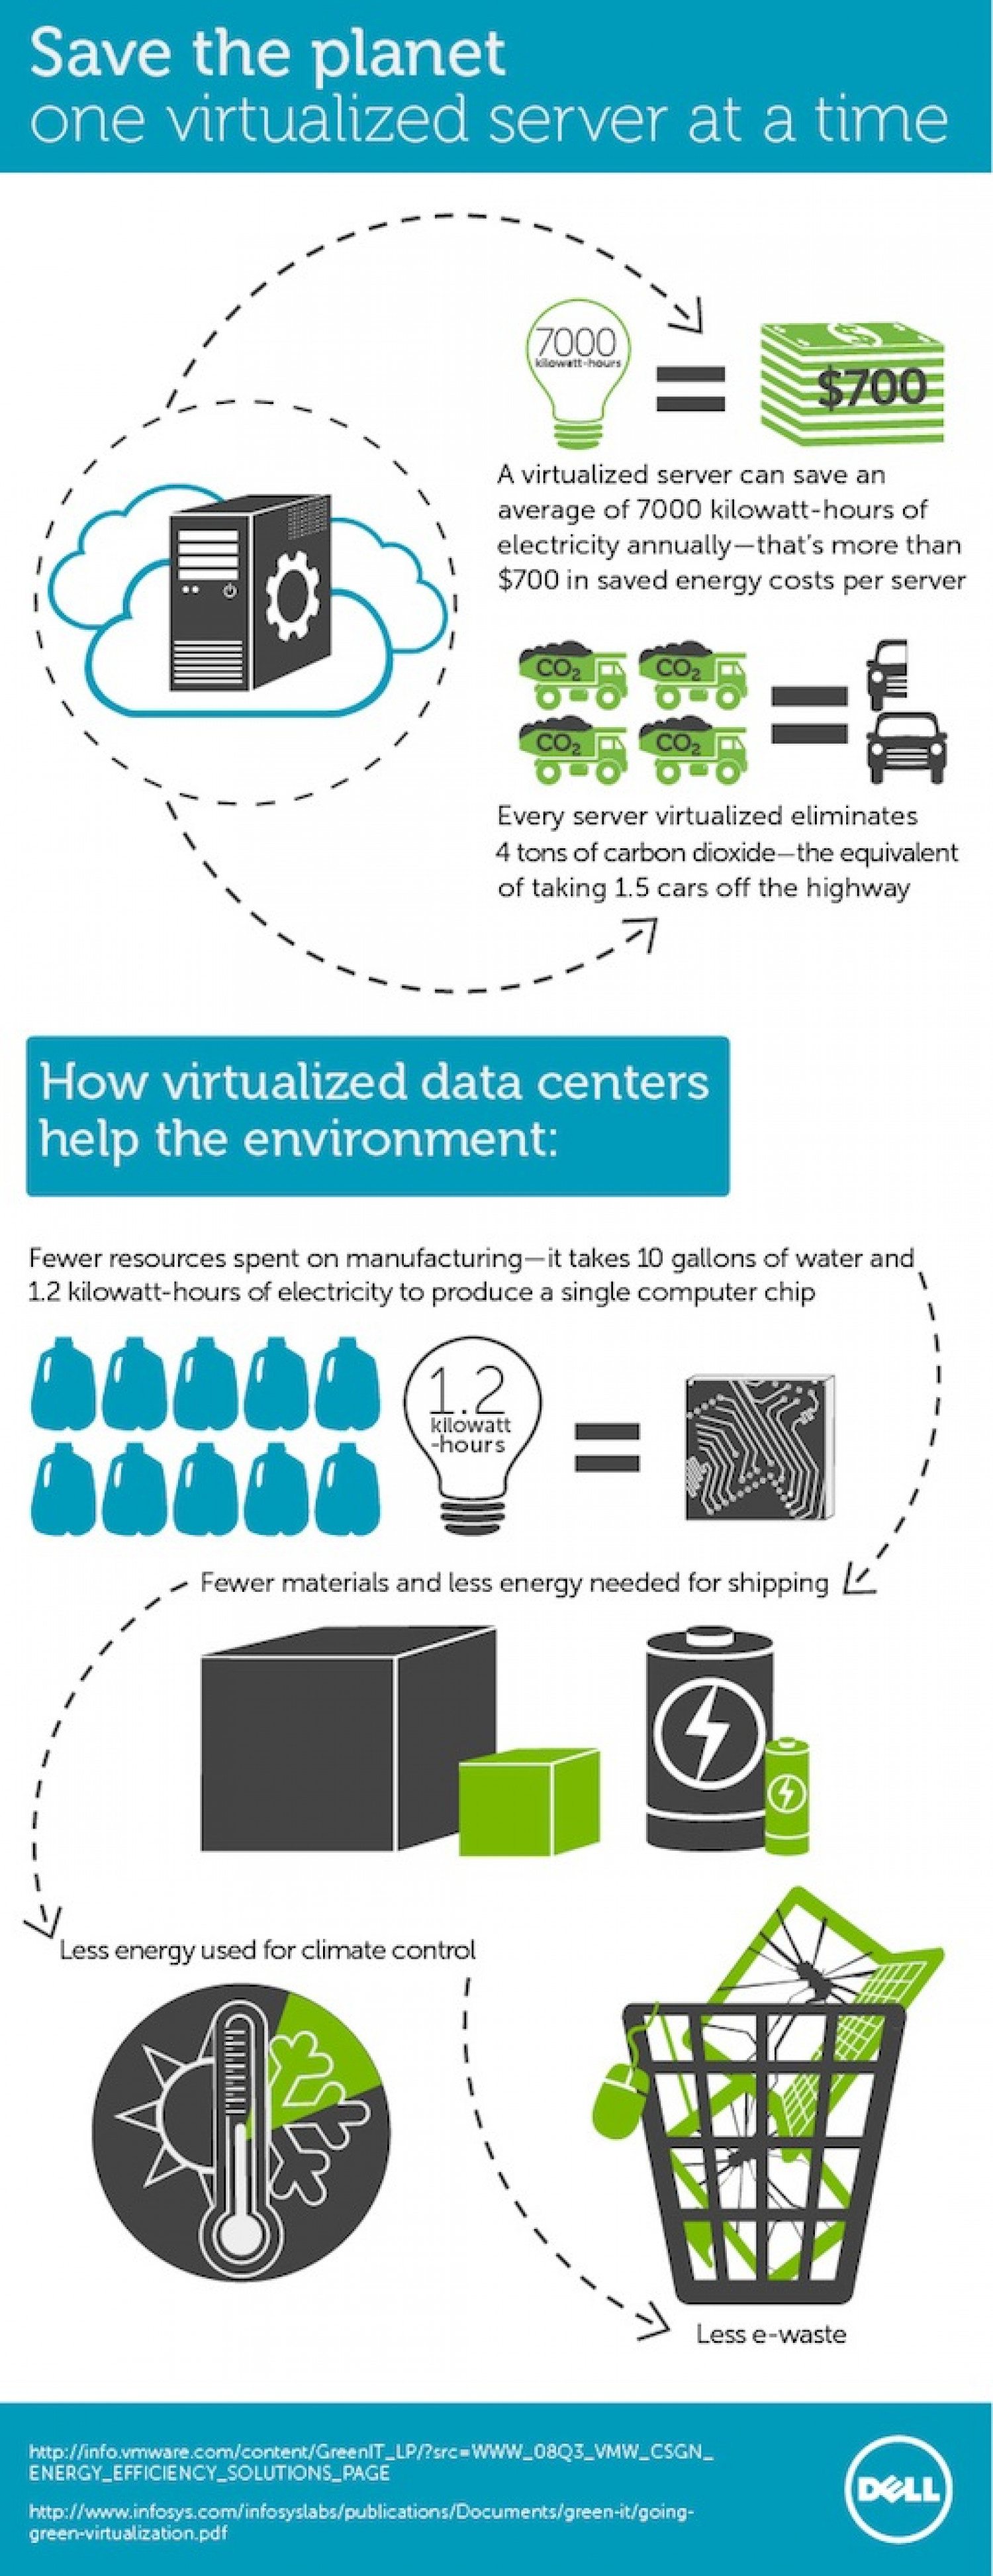 Save the planet one virtualized server at a time Infographic